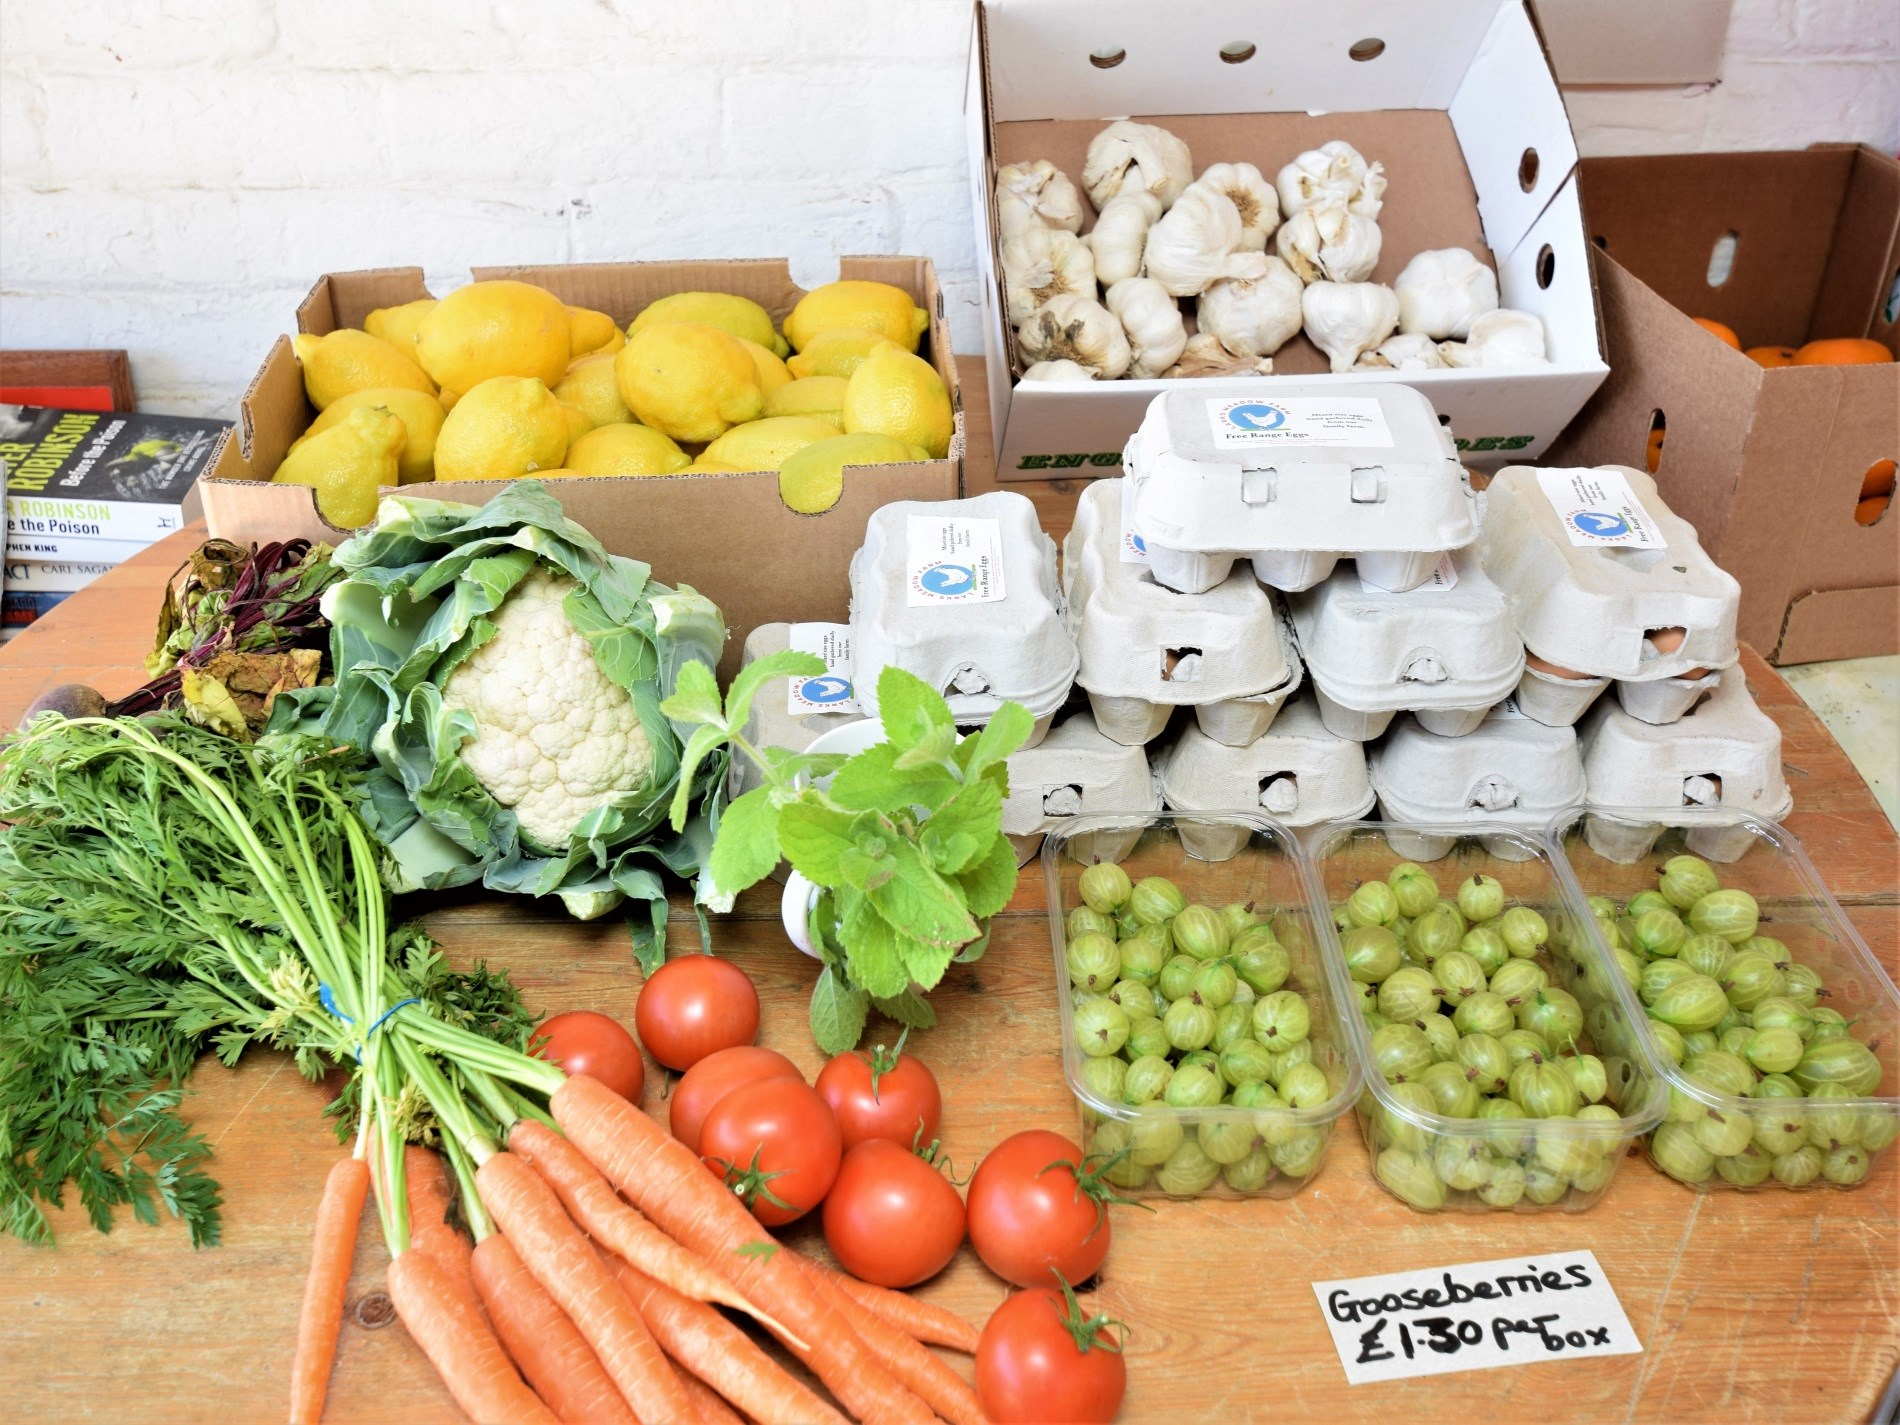 Lovely local produce in the farm shop